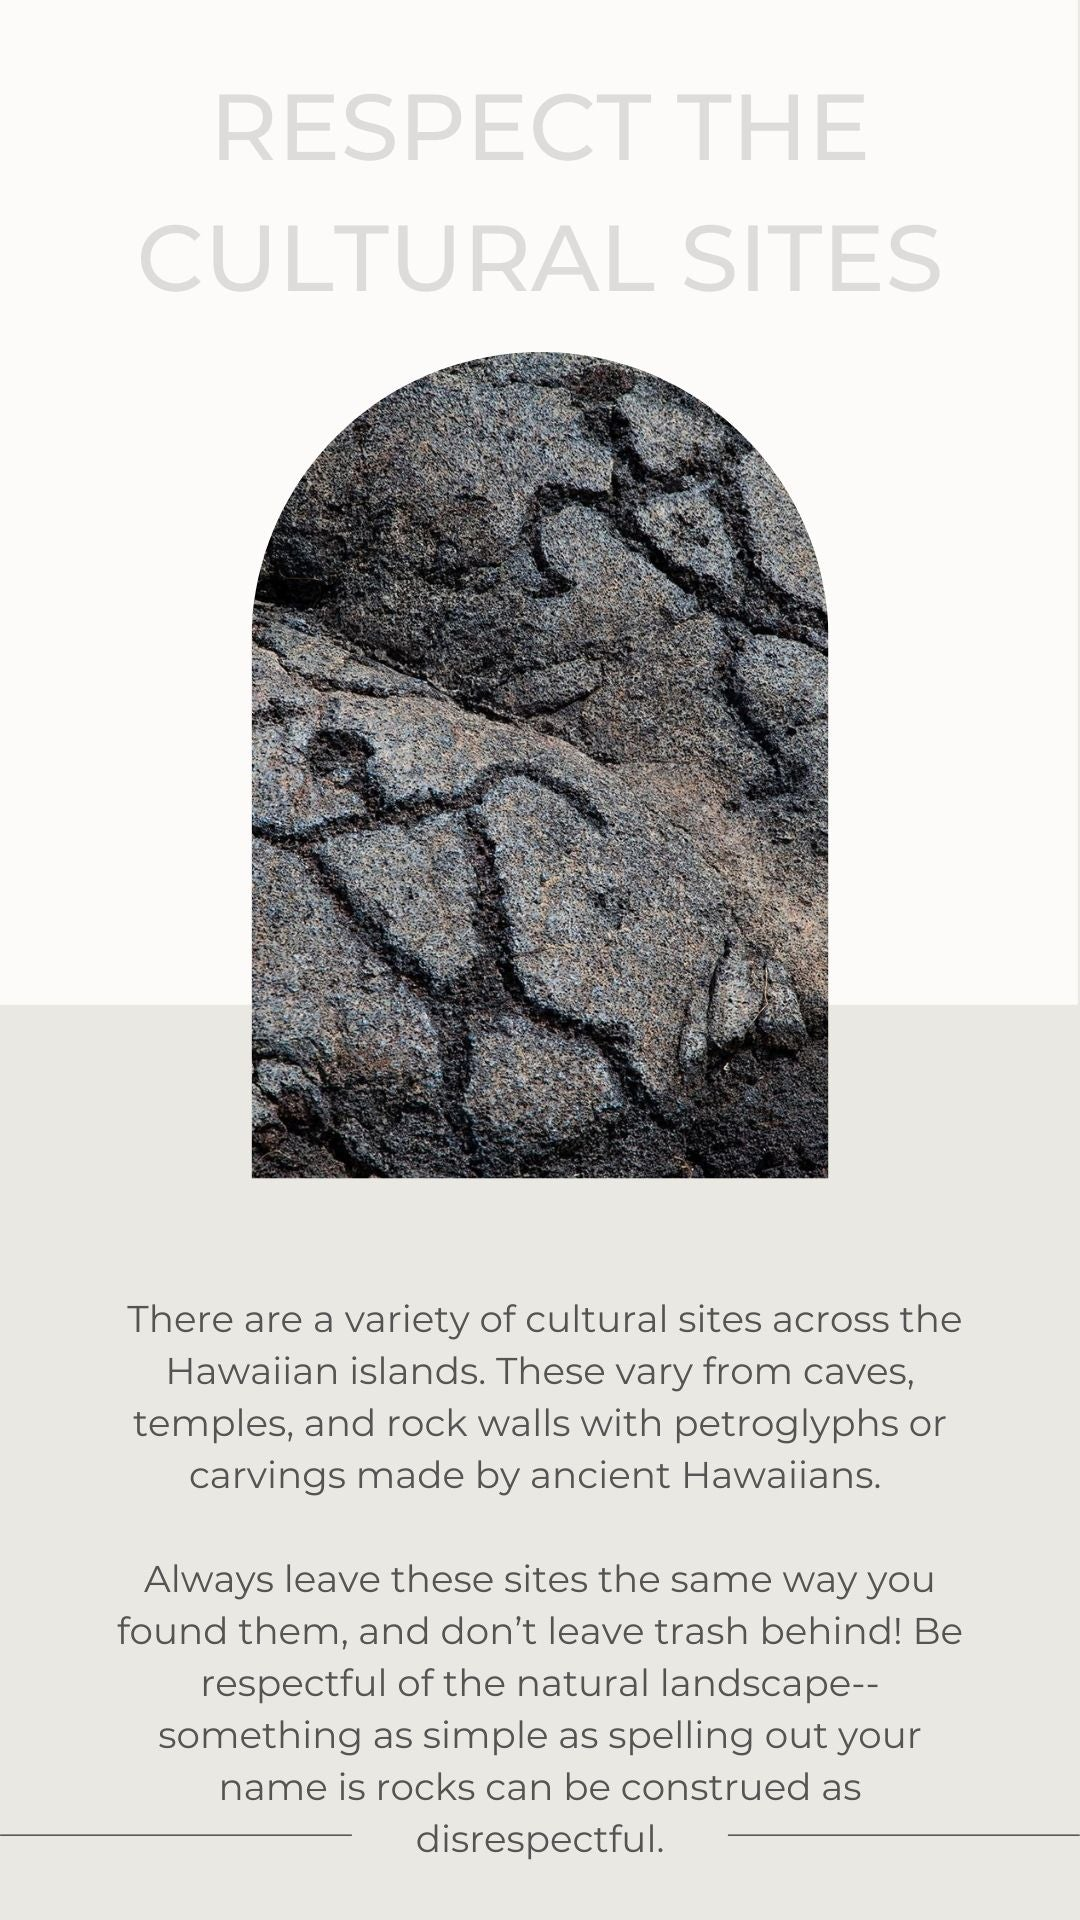 Respect the cultural sites